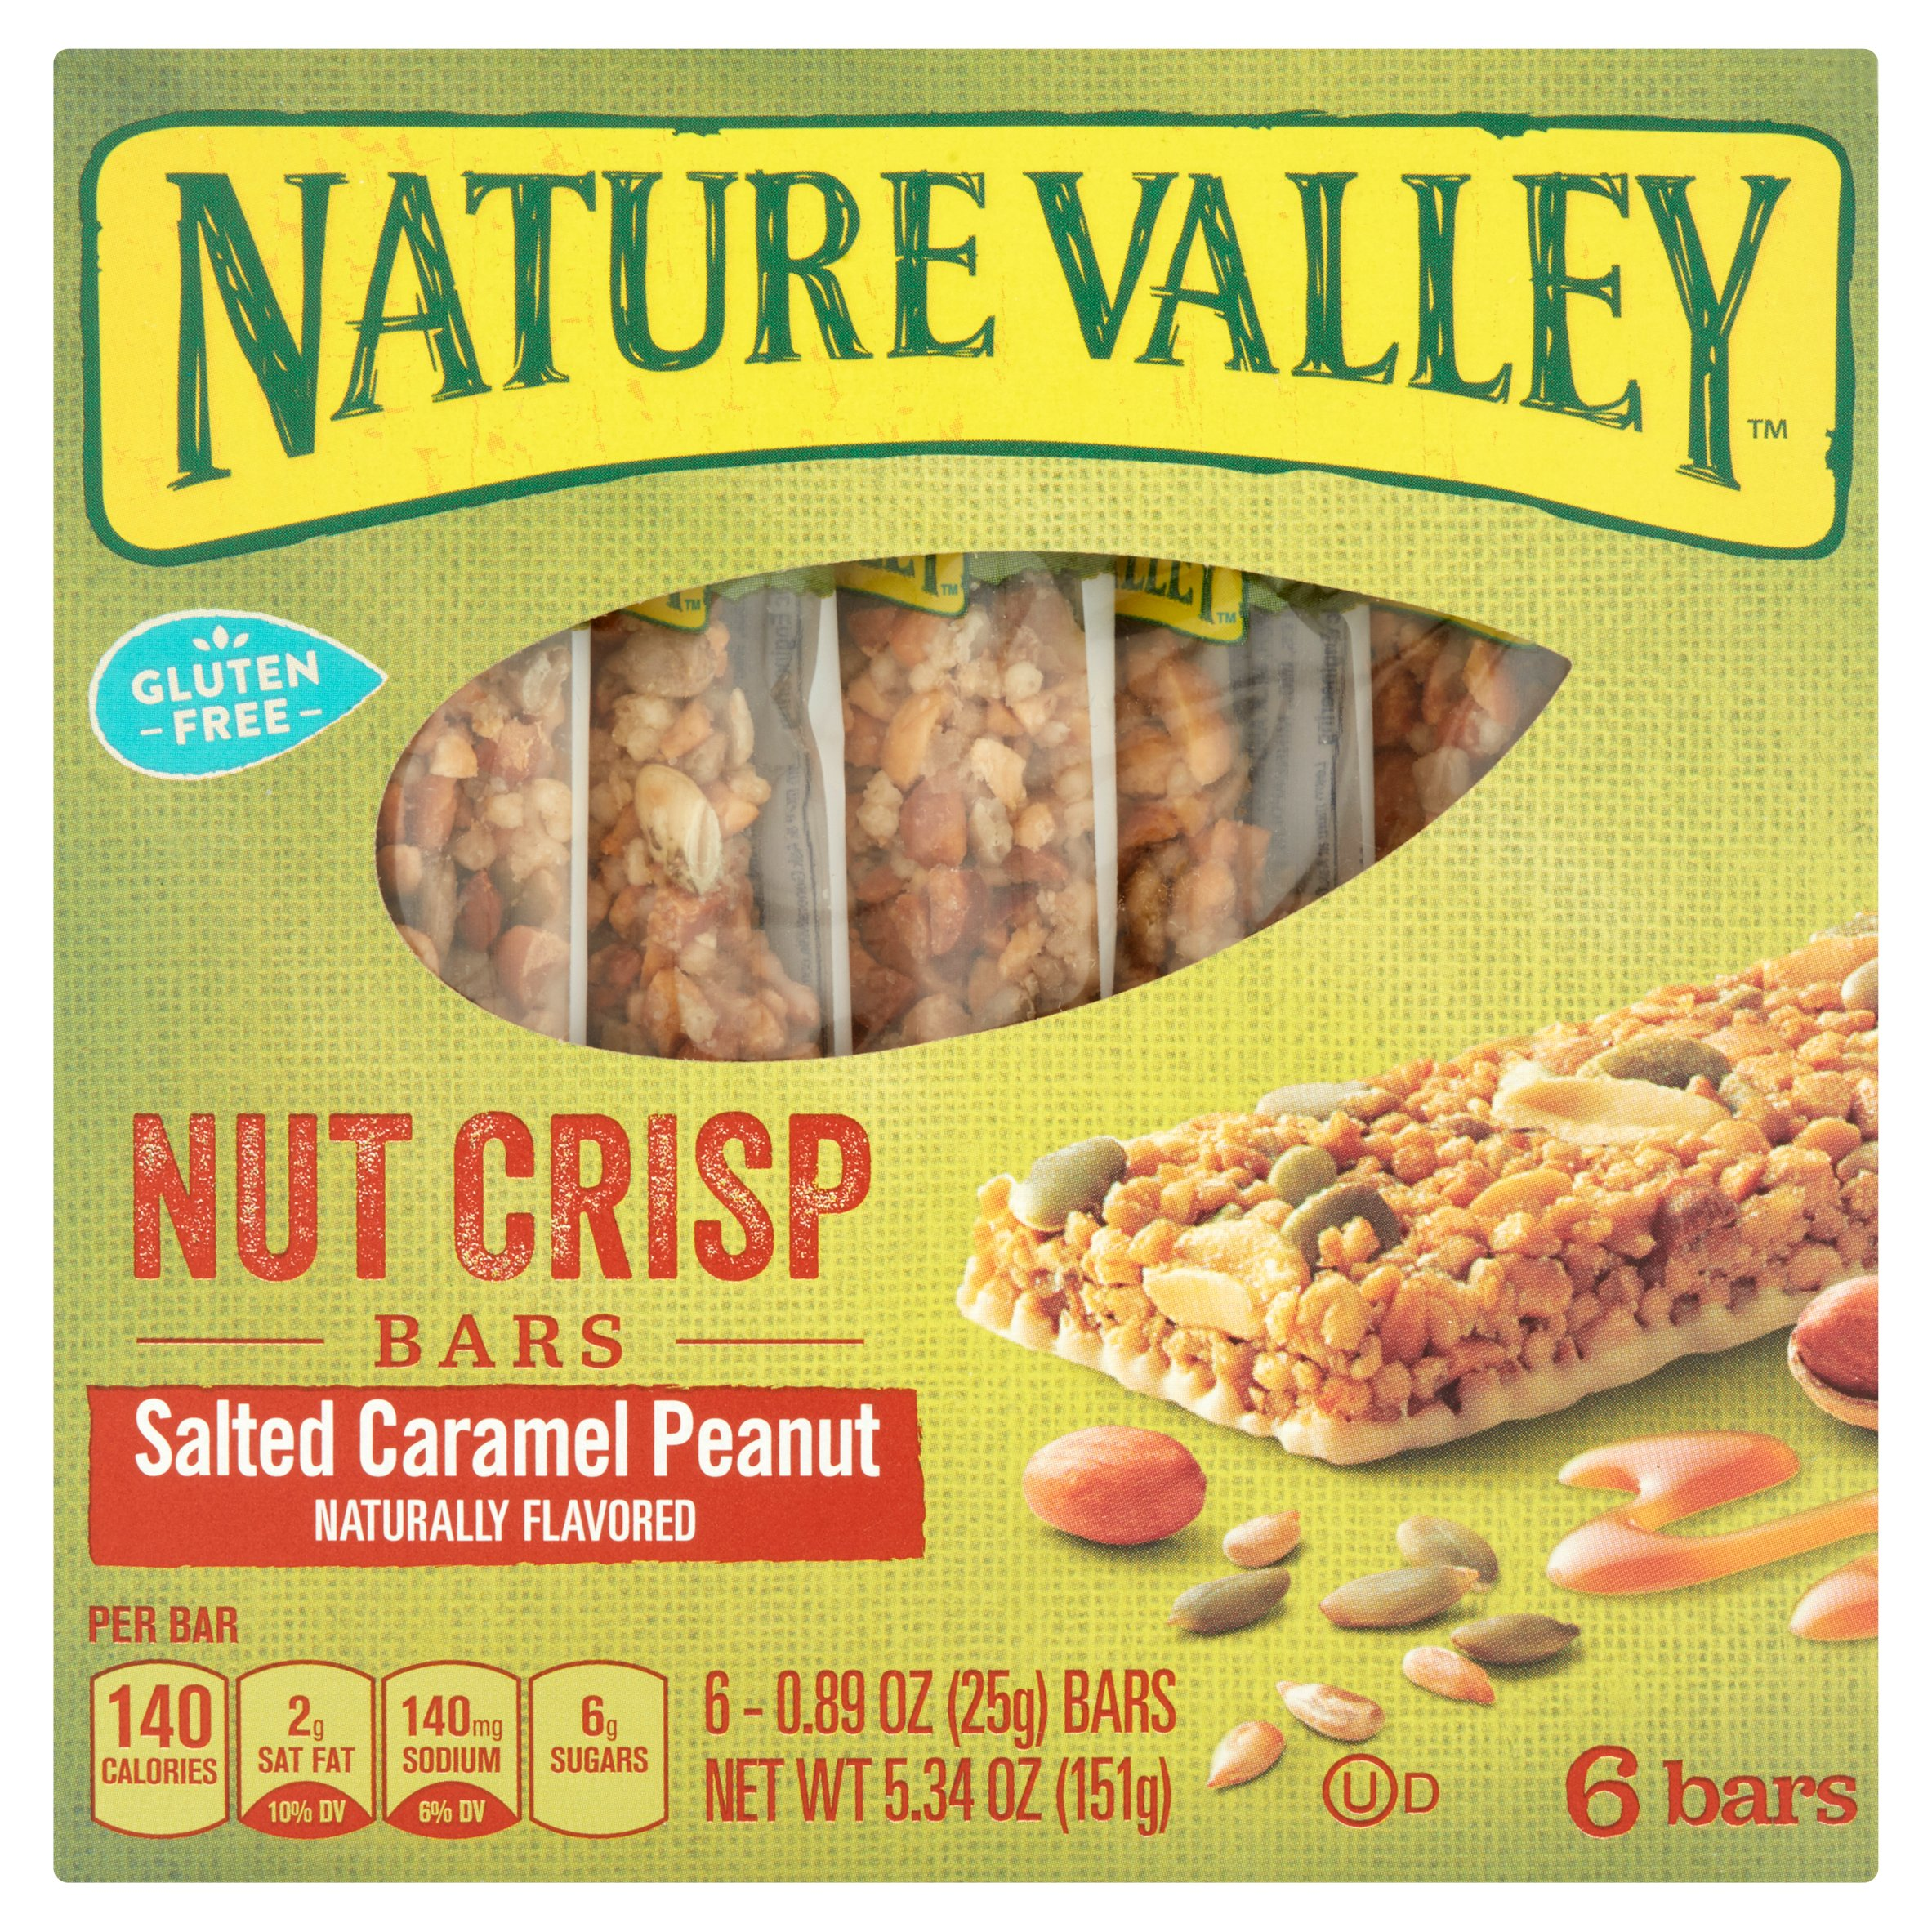 Nature Valley Salted Caramel Peanut Nut Crisp Bars, 0.89 oz, 6 count